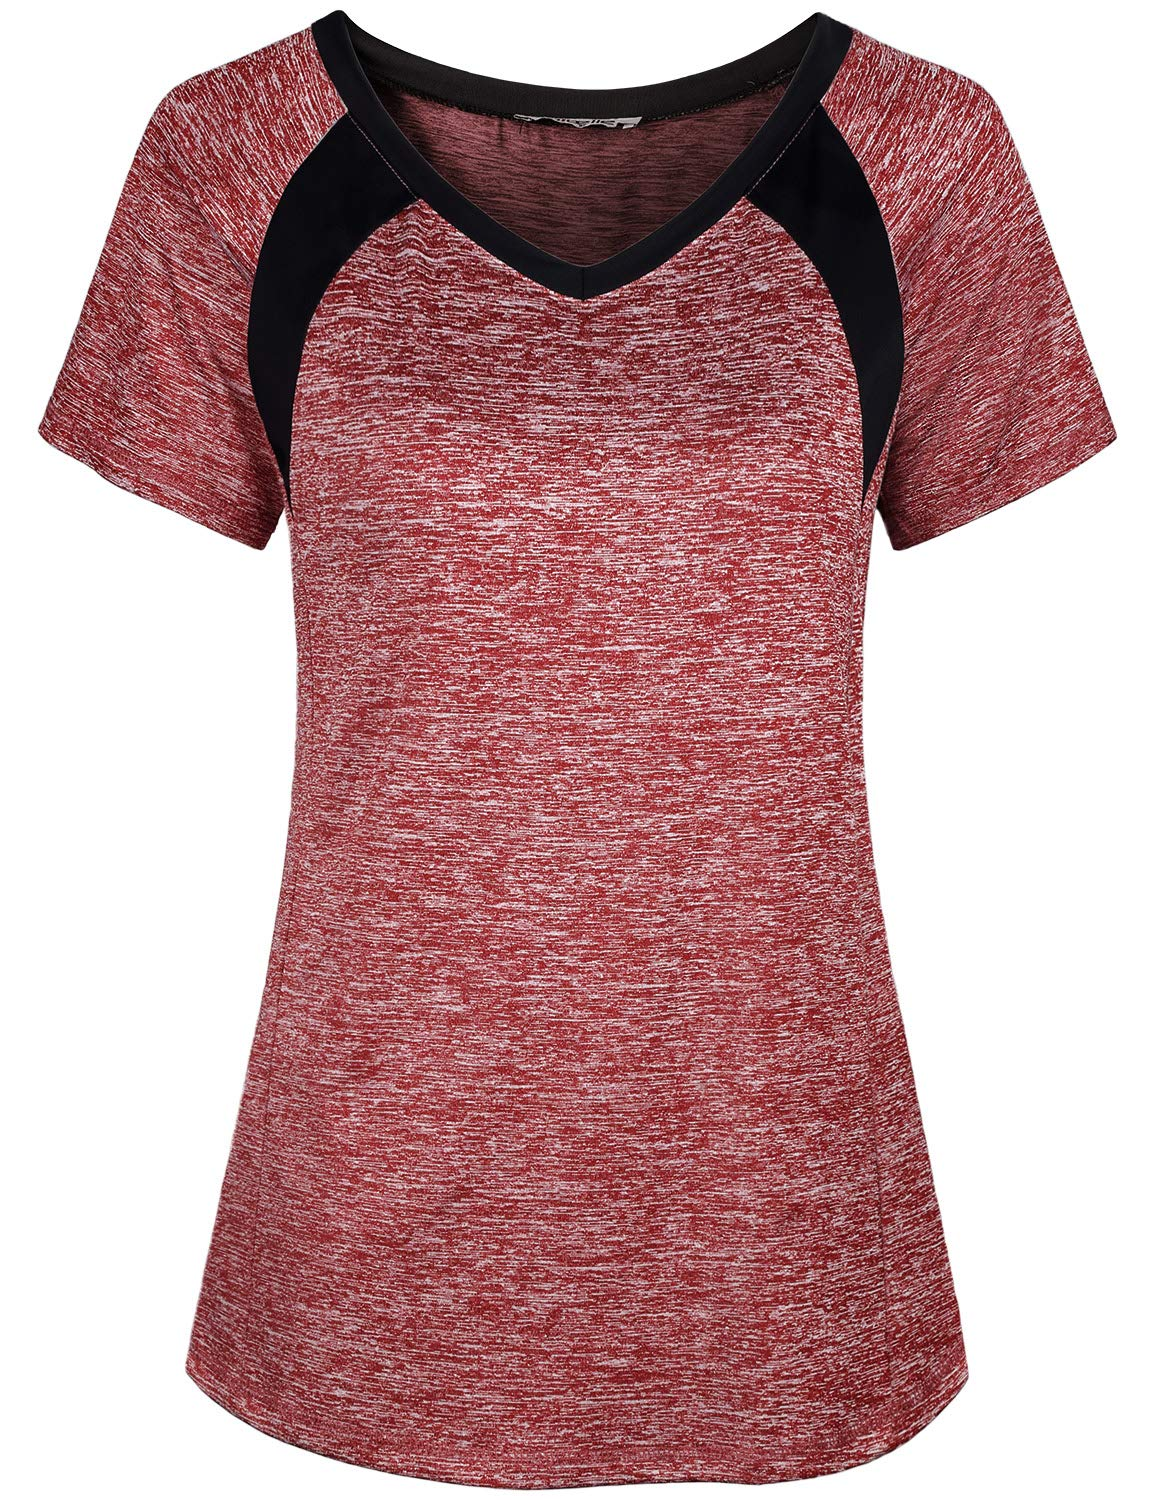 Miusey Yoga Tops for Women, Ladies Short Sleeve Sport Exercise Elastic Petite Activewear Fast Dry Running Solid Color Light Weight Cool Relaxing Wearing Wine M